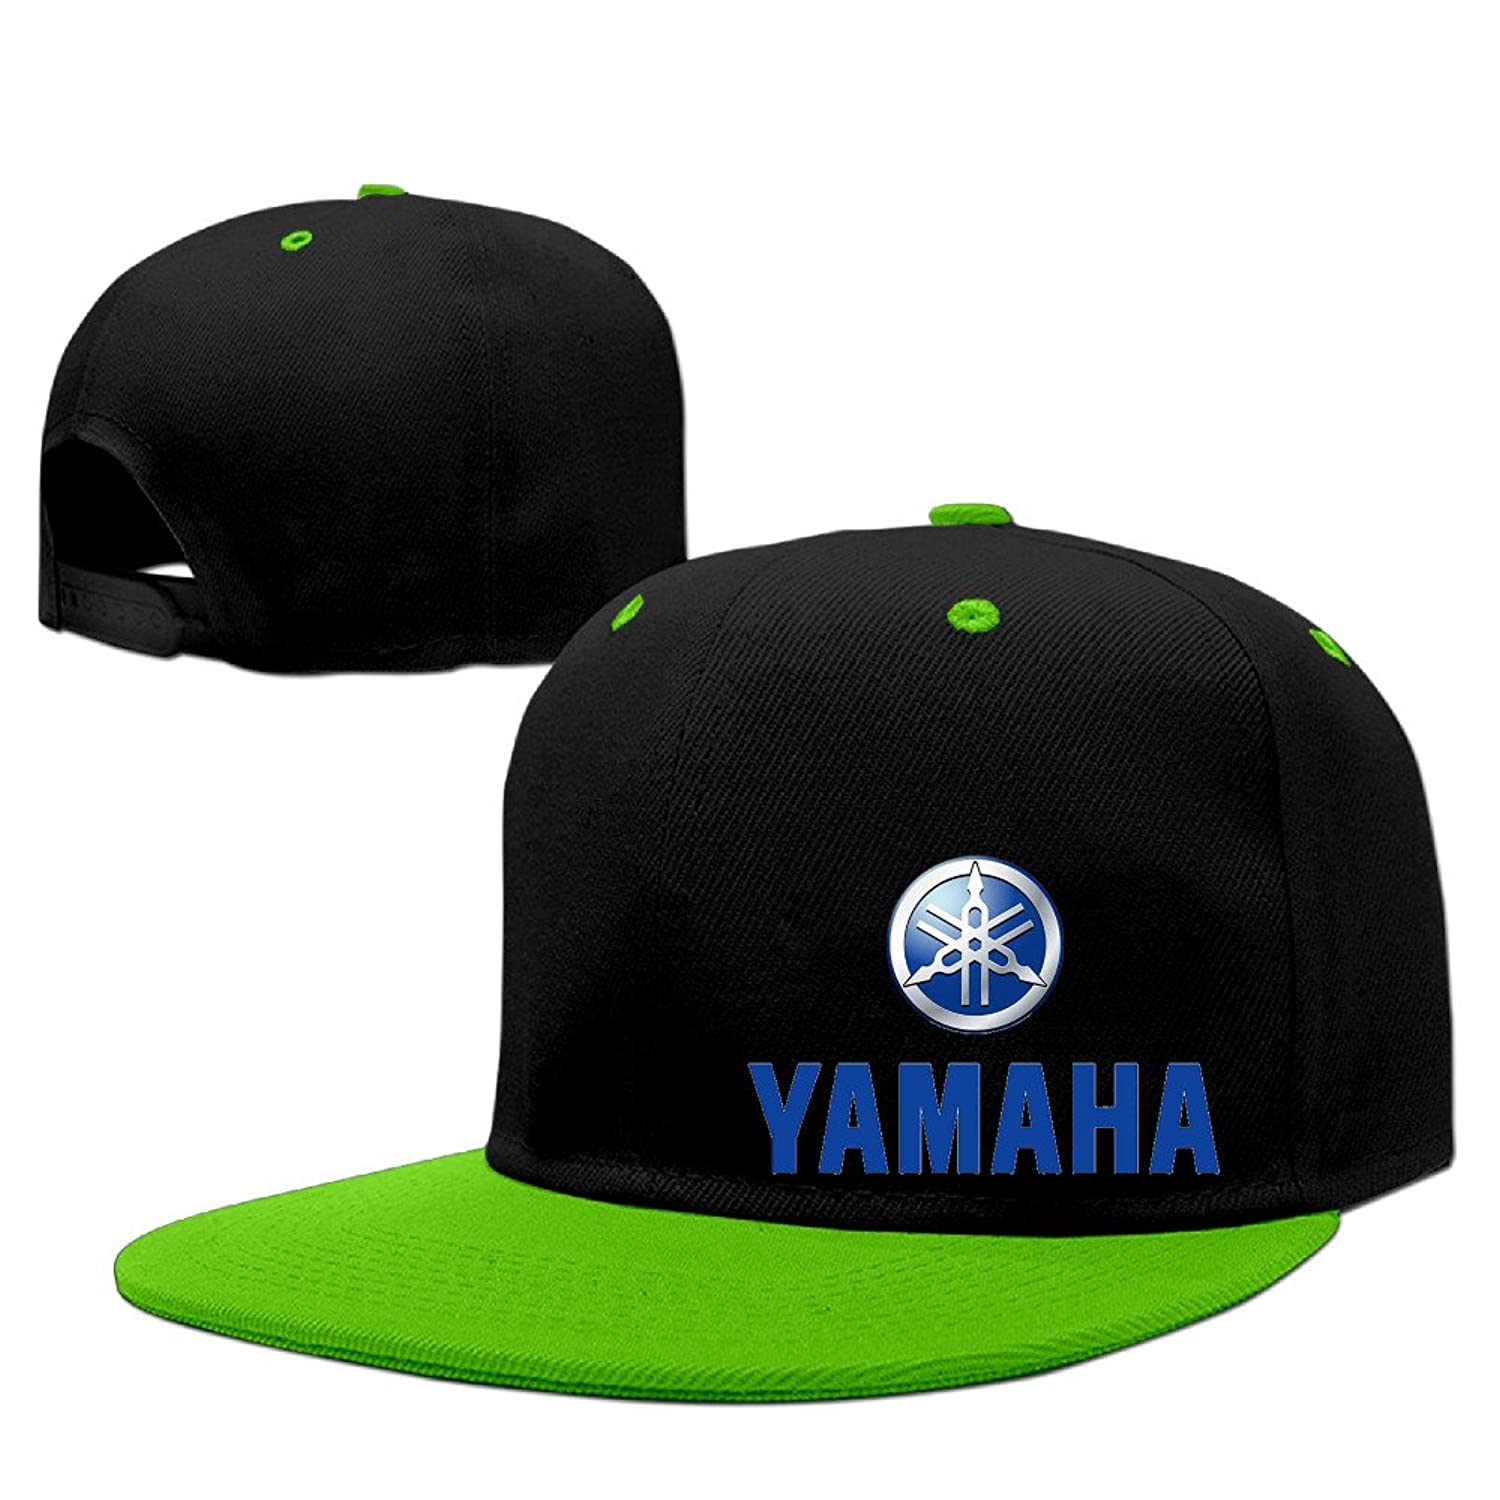 MYDT1 Unisex Yamaha Logo Adjustable Hip Hop Baseball Caps Hats